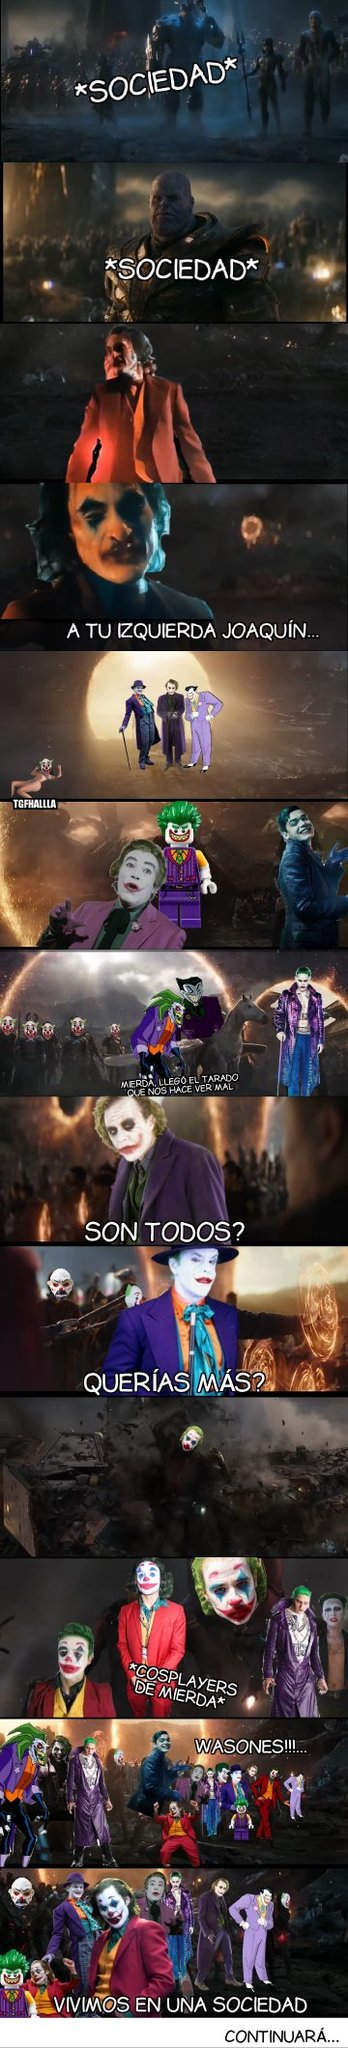 Joker: society war parte 1 - meme